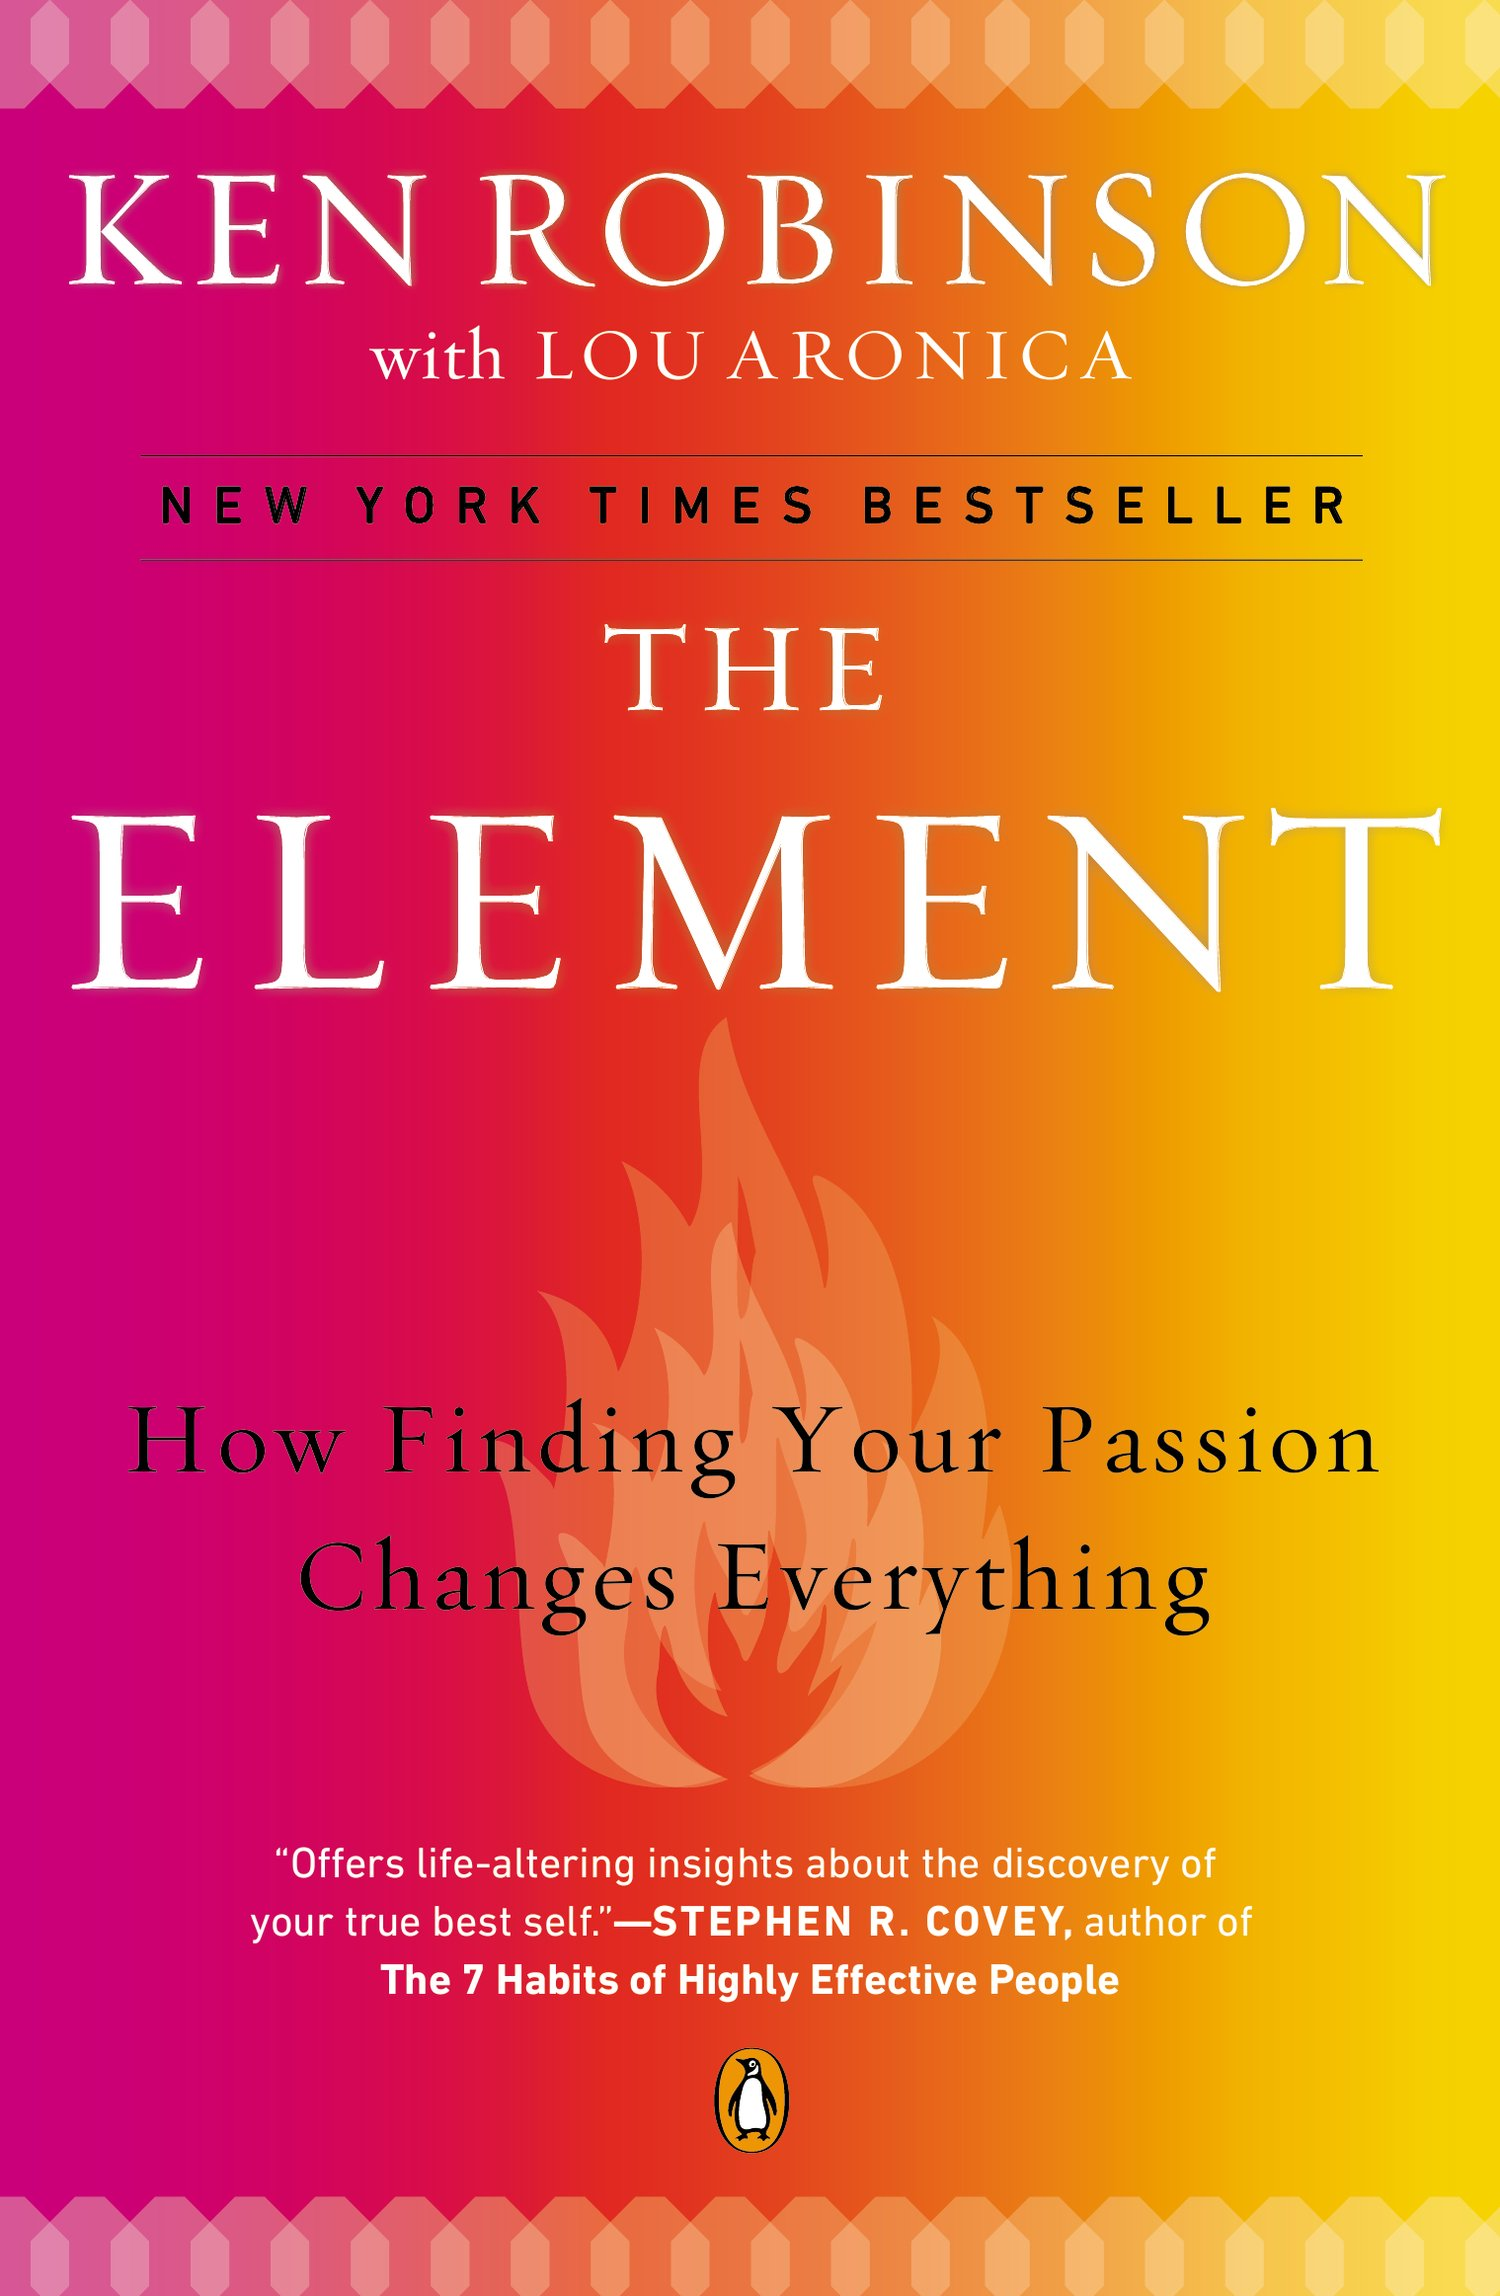 http://www.amazon.com/The-Element-Finding-Passion-Everything/dp/0143116738/ref=sr_1_1?ie=UTF8&qid=1384886121&sr=8-1&keywords=the+element